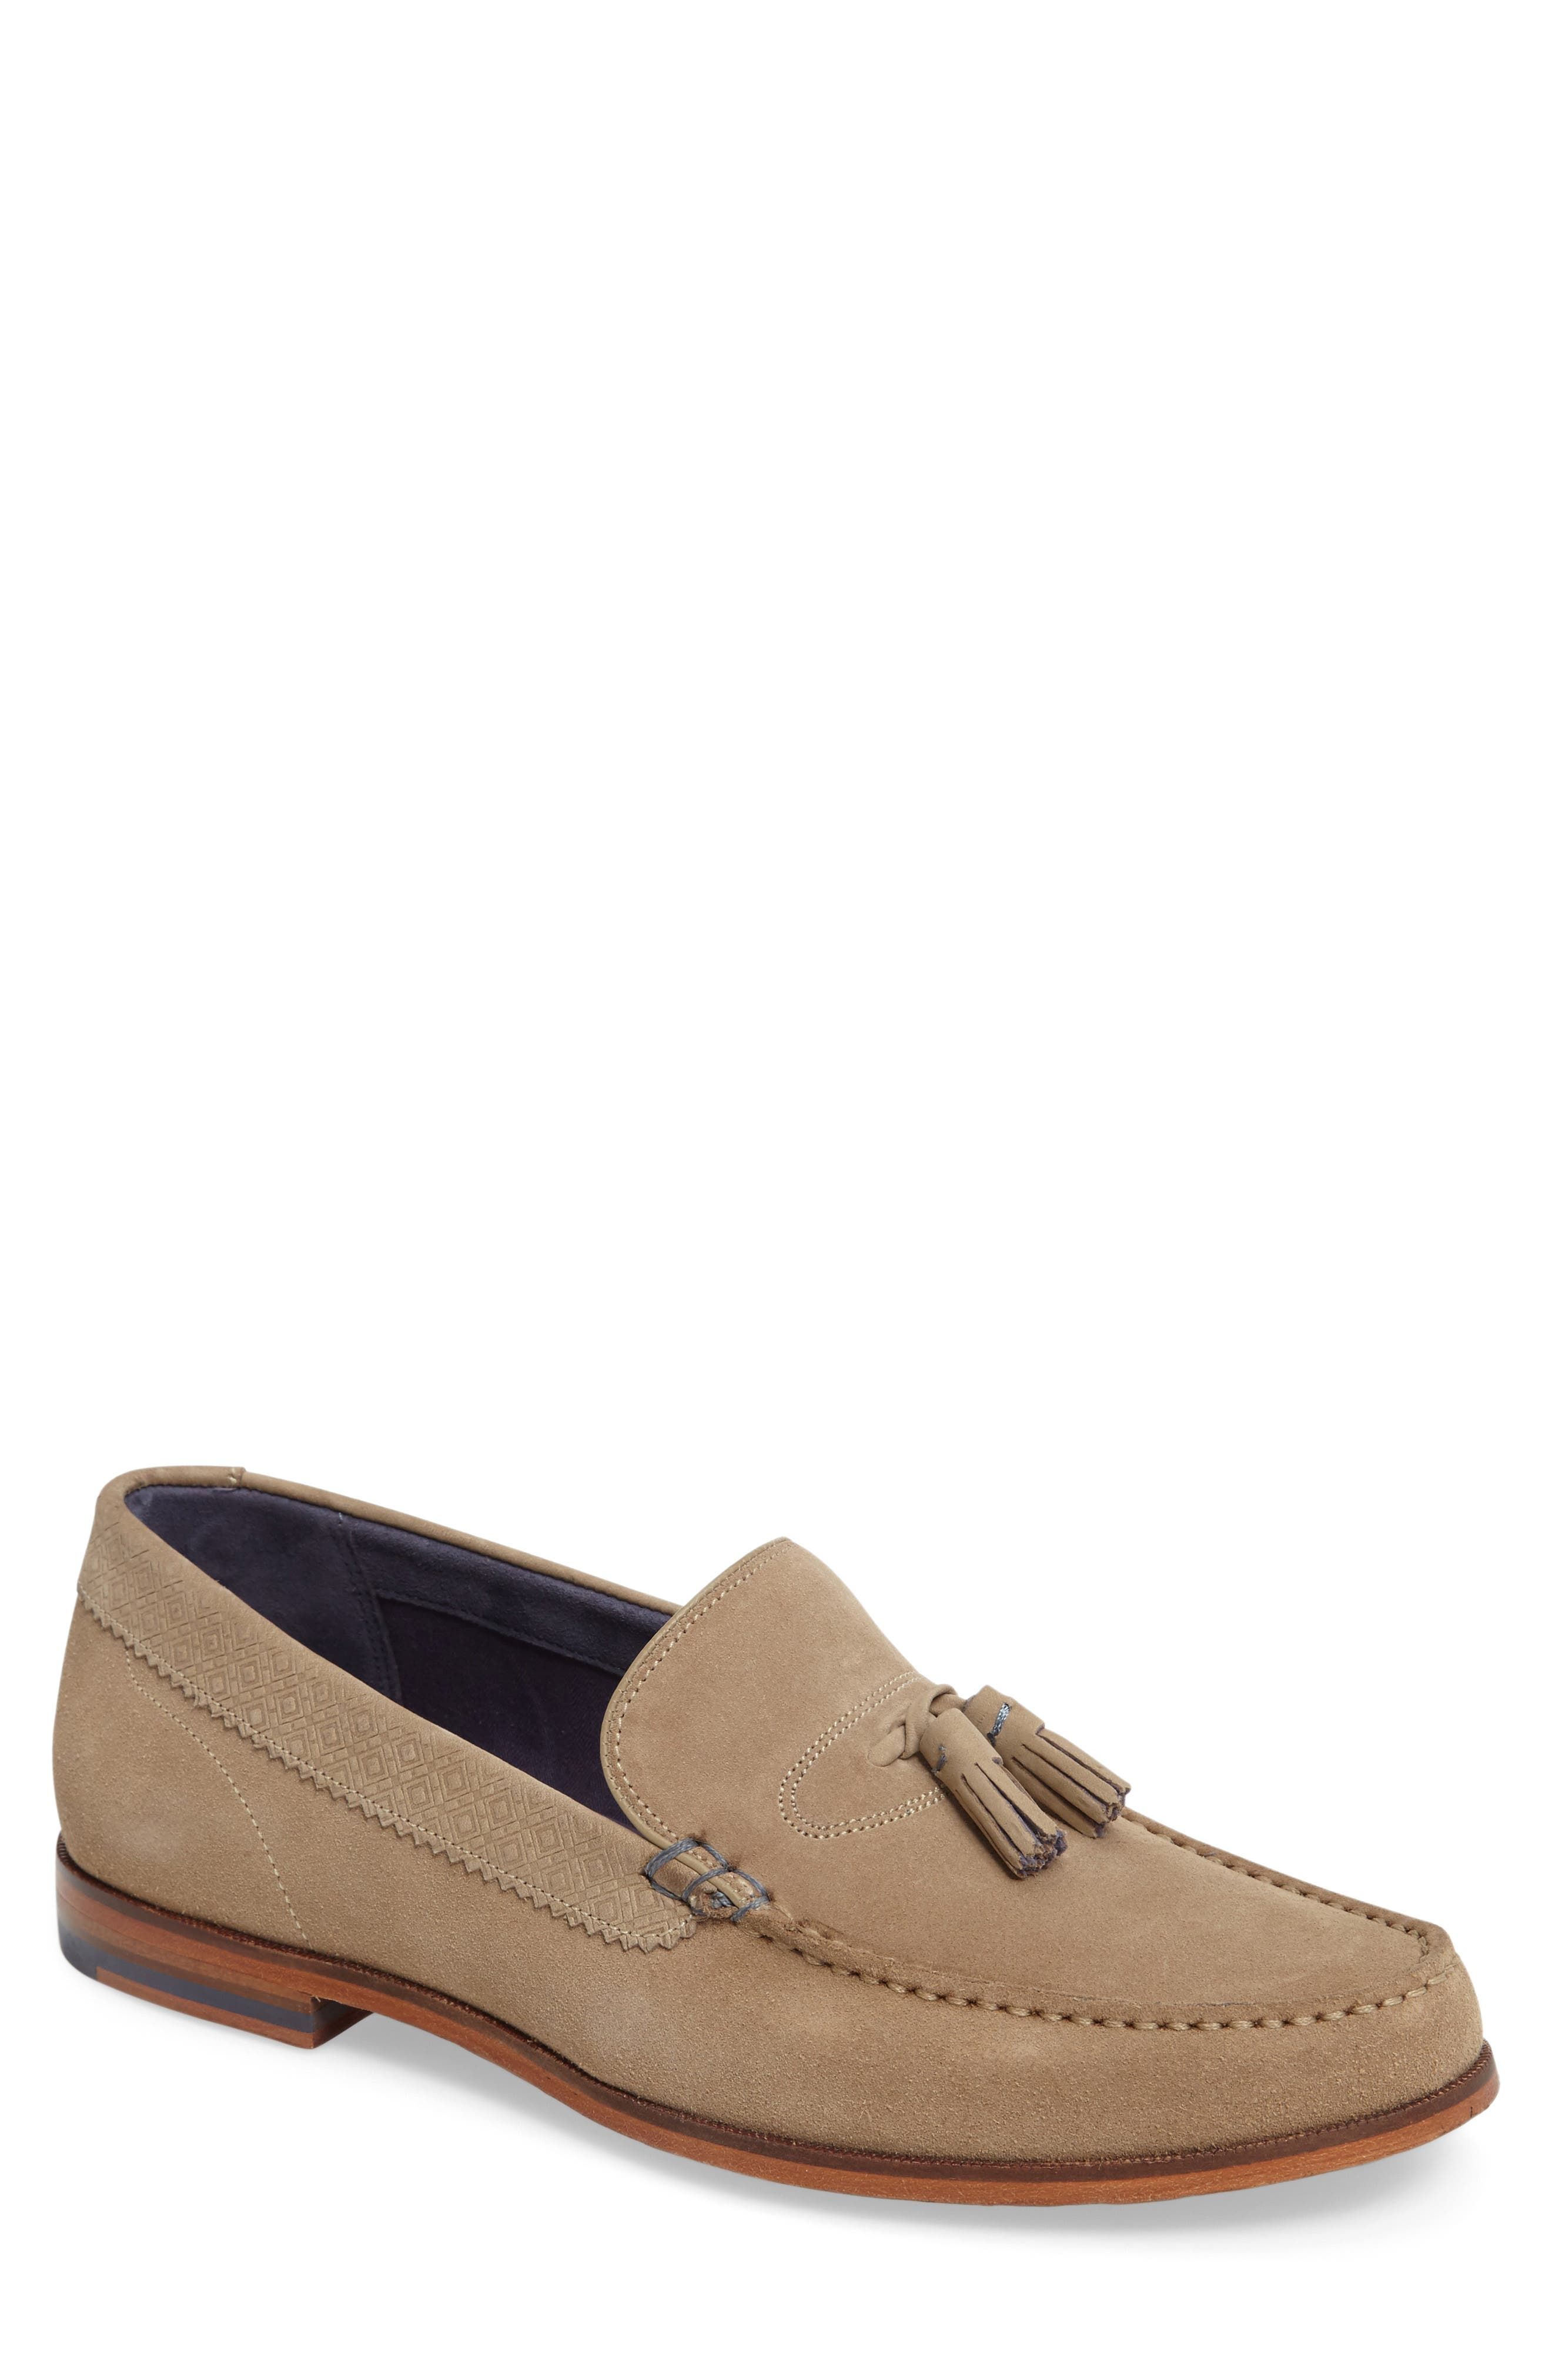 Dougge Tassel Loafer,                         Main,                         color,